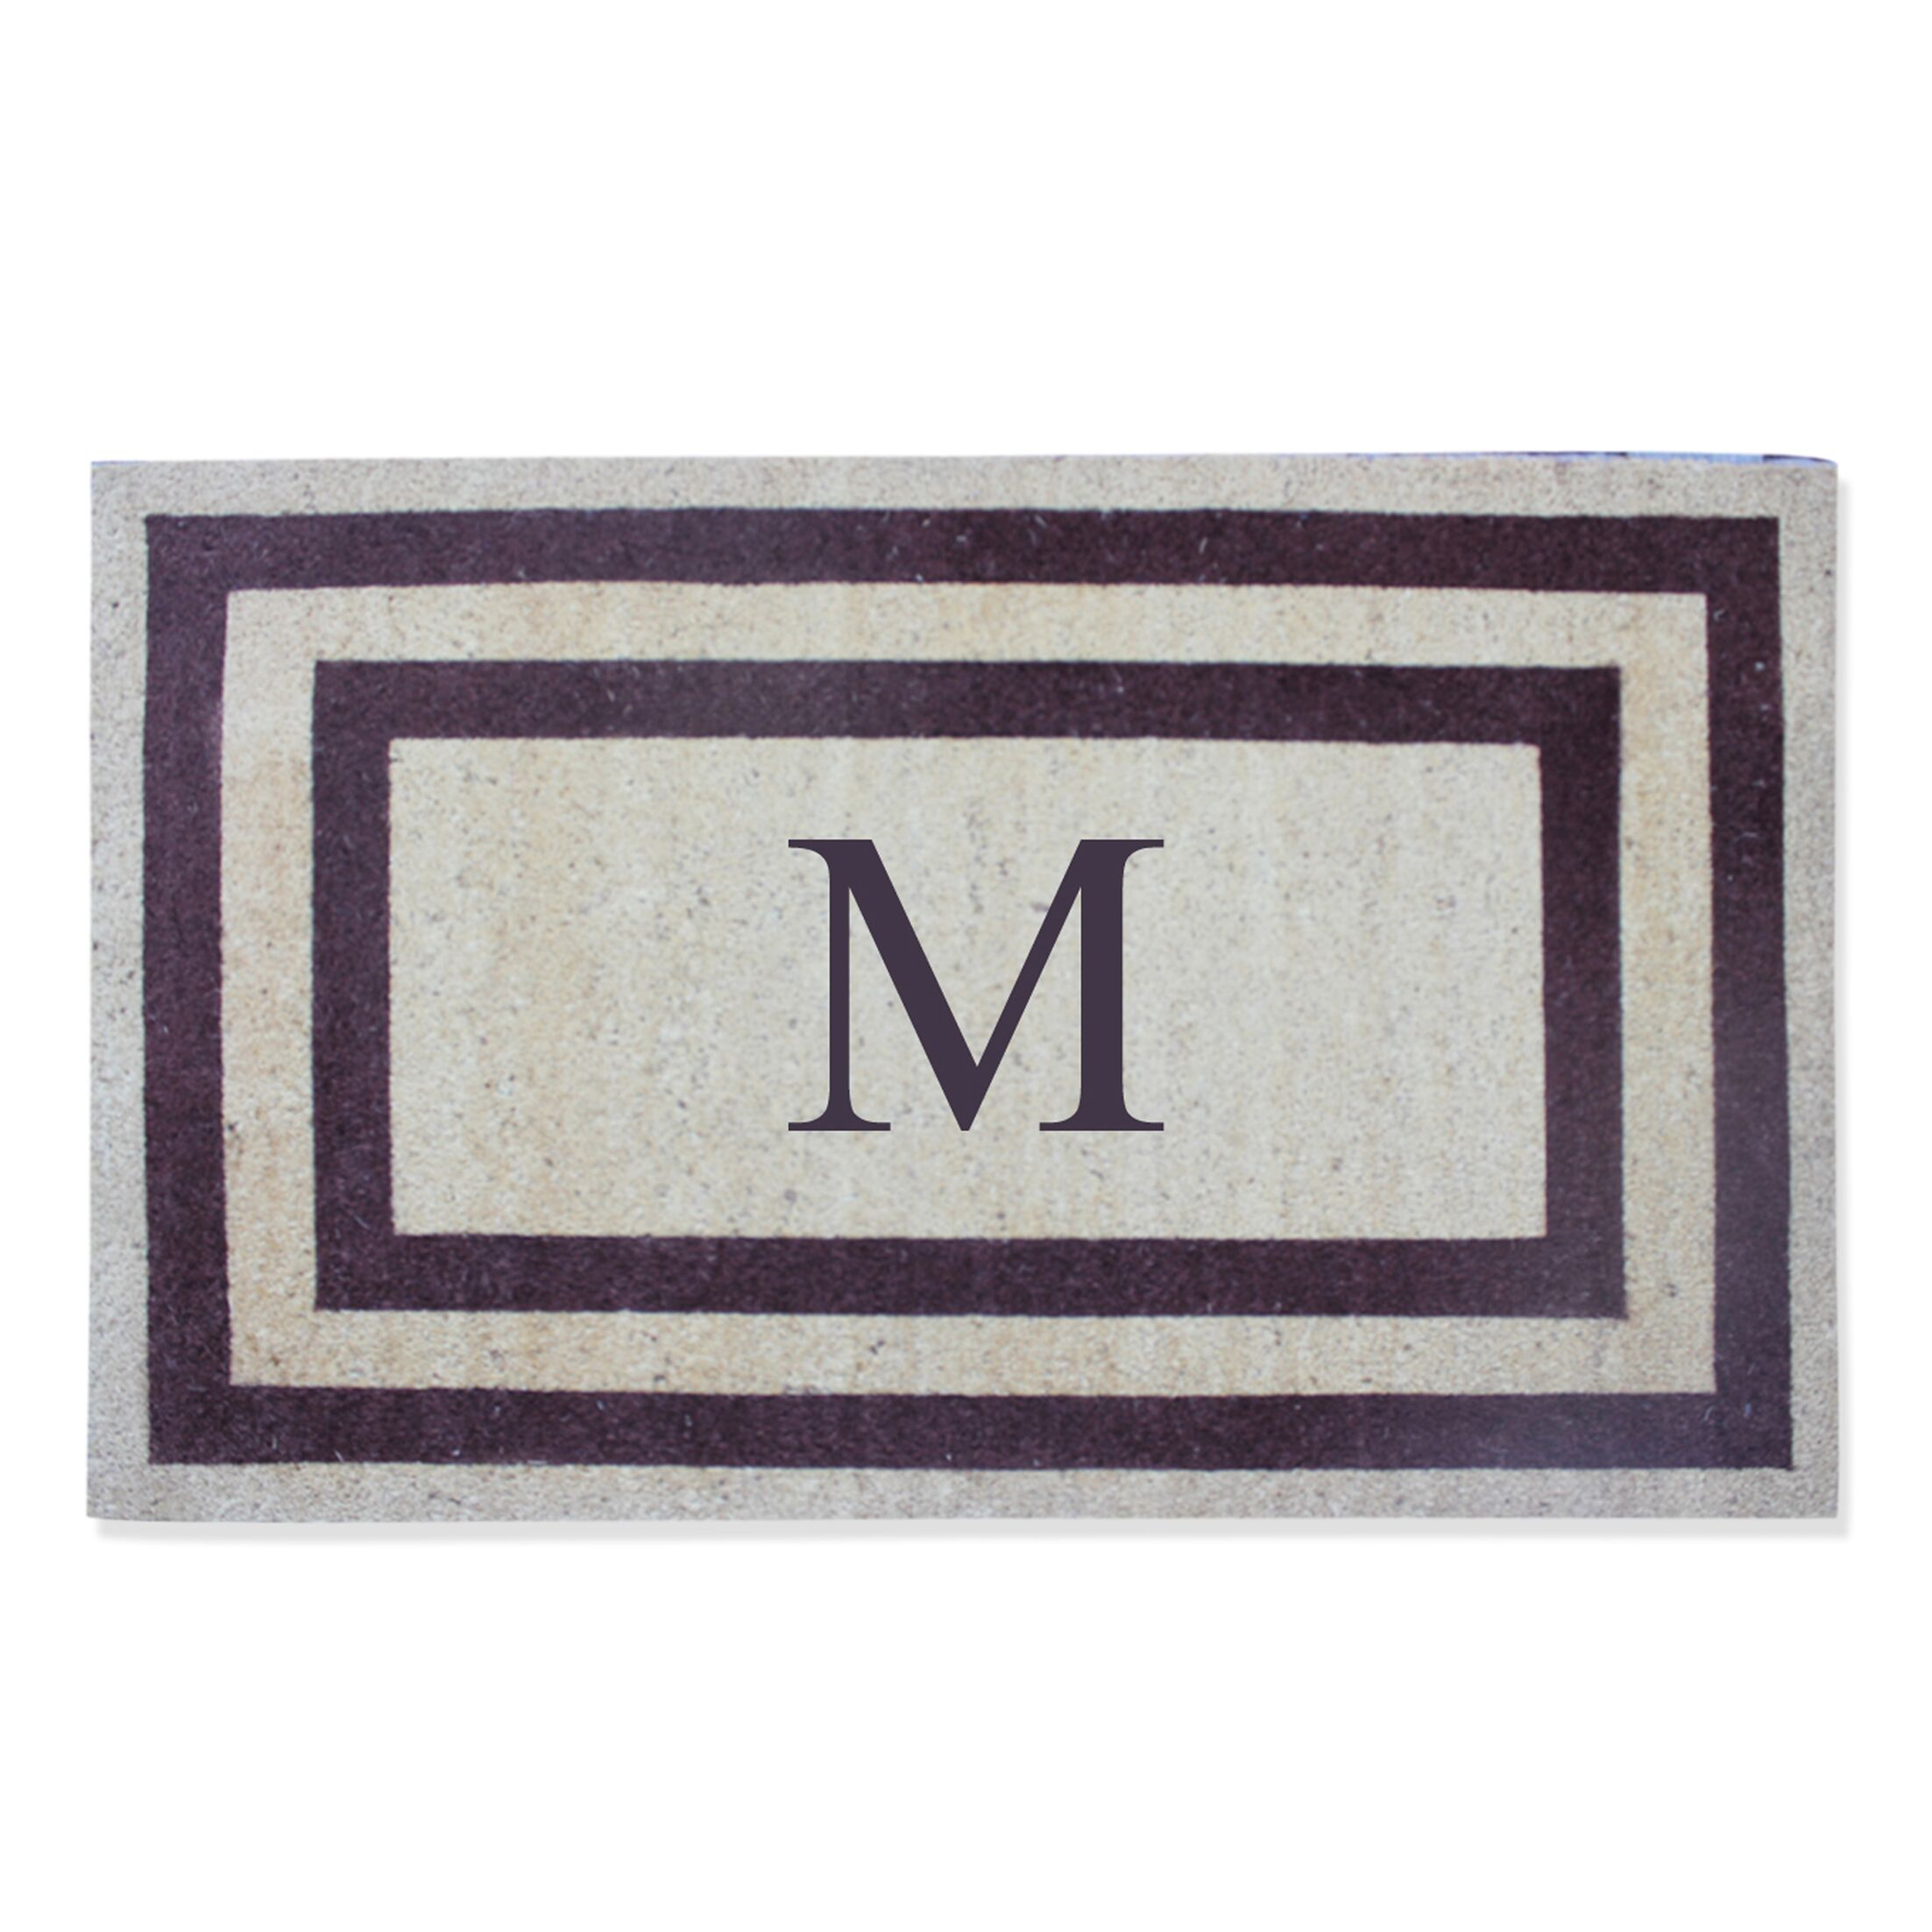 First Impression Engineered Anti Shred Treated Terrance Border Doormat Letter: M